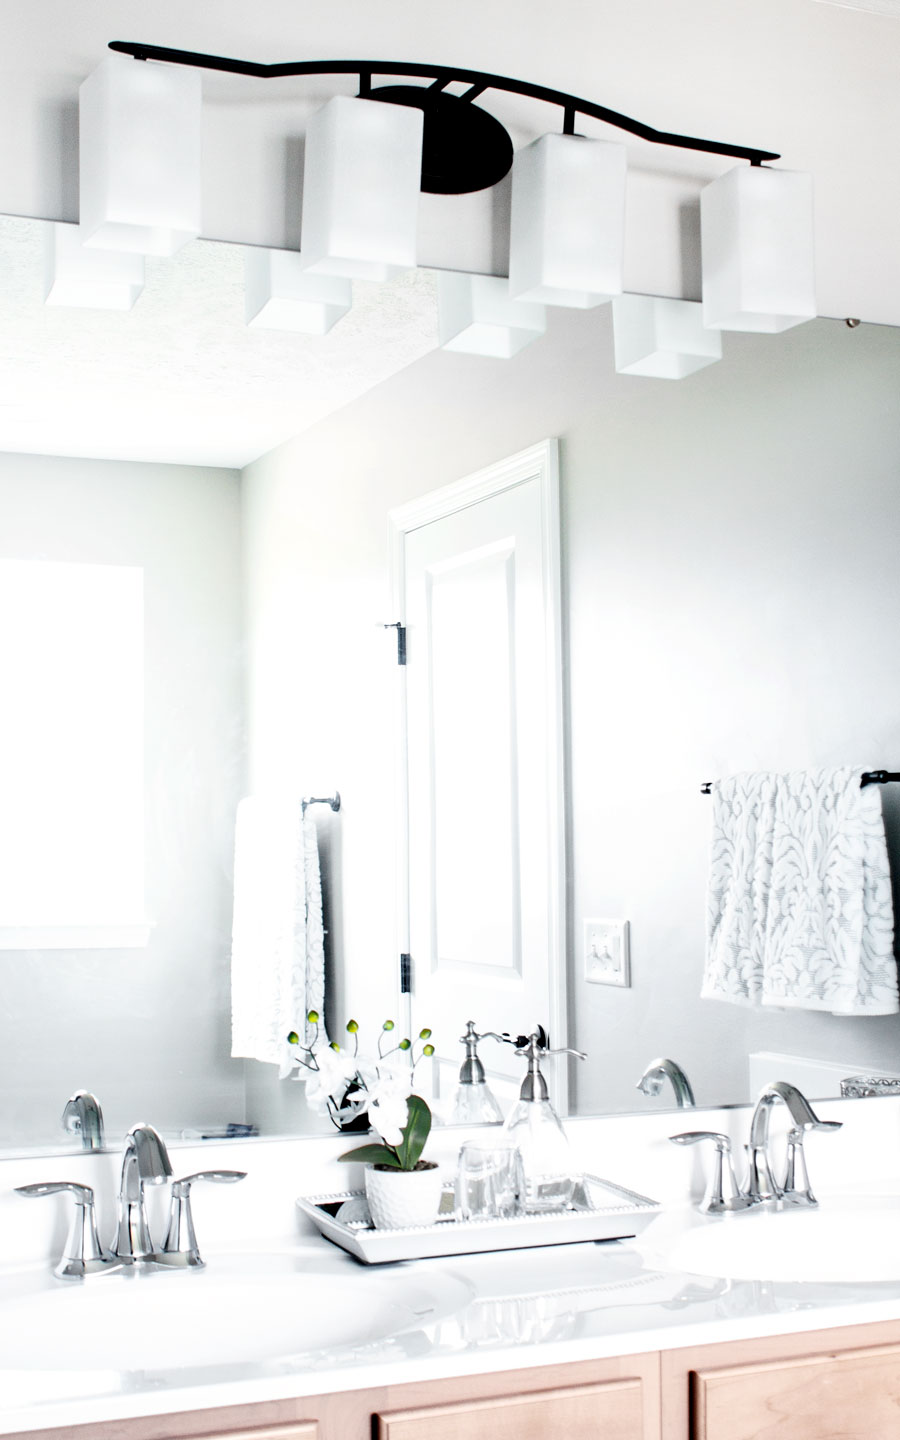 Ordinaire Inexpensive Lighting U0026 Mirror Options To Make Over A Bathroom On Less Than  $100. #